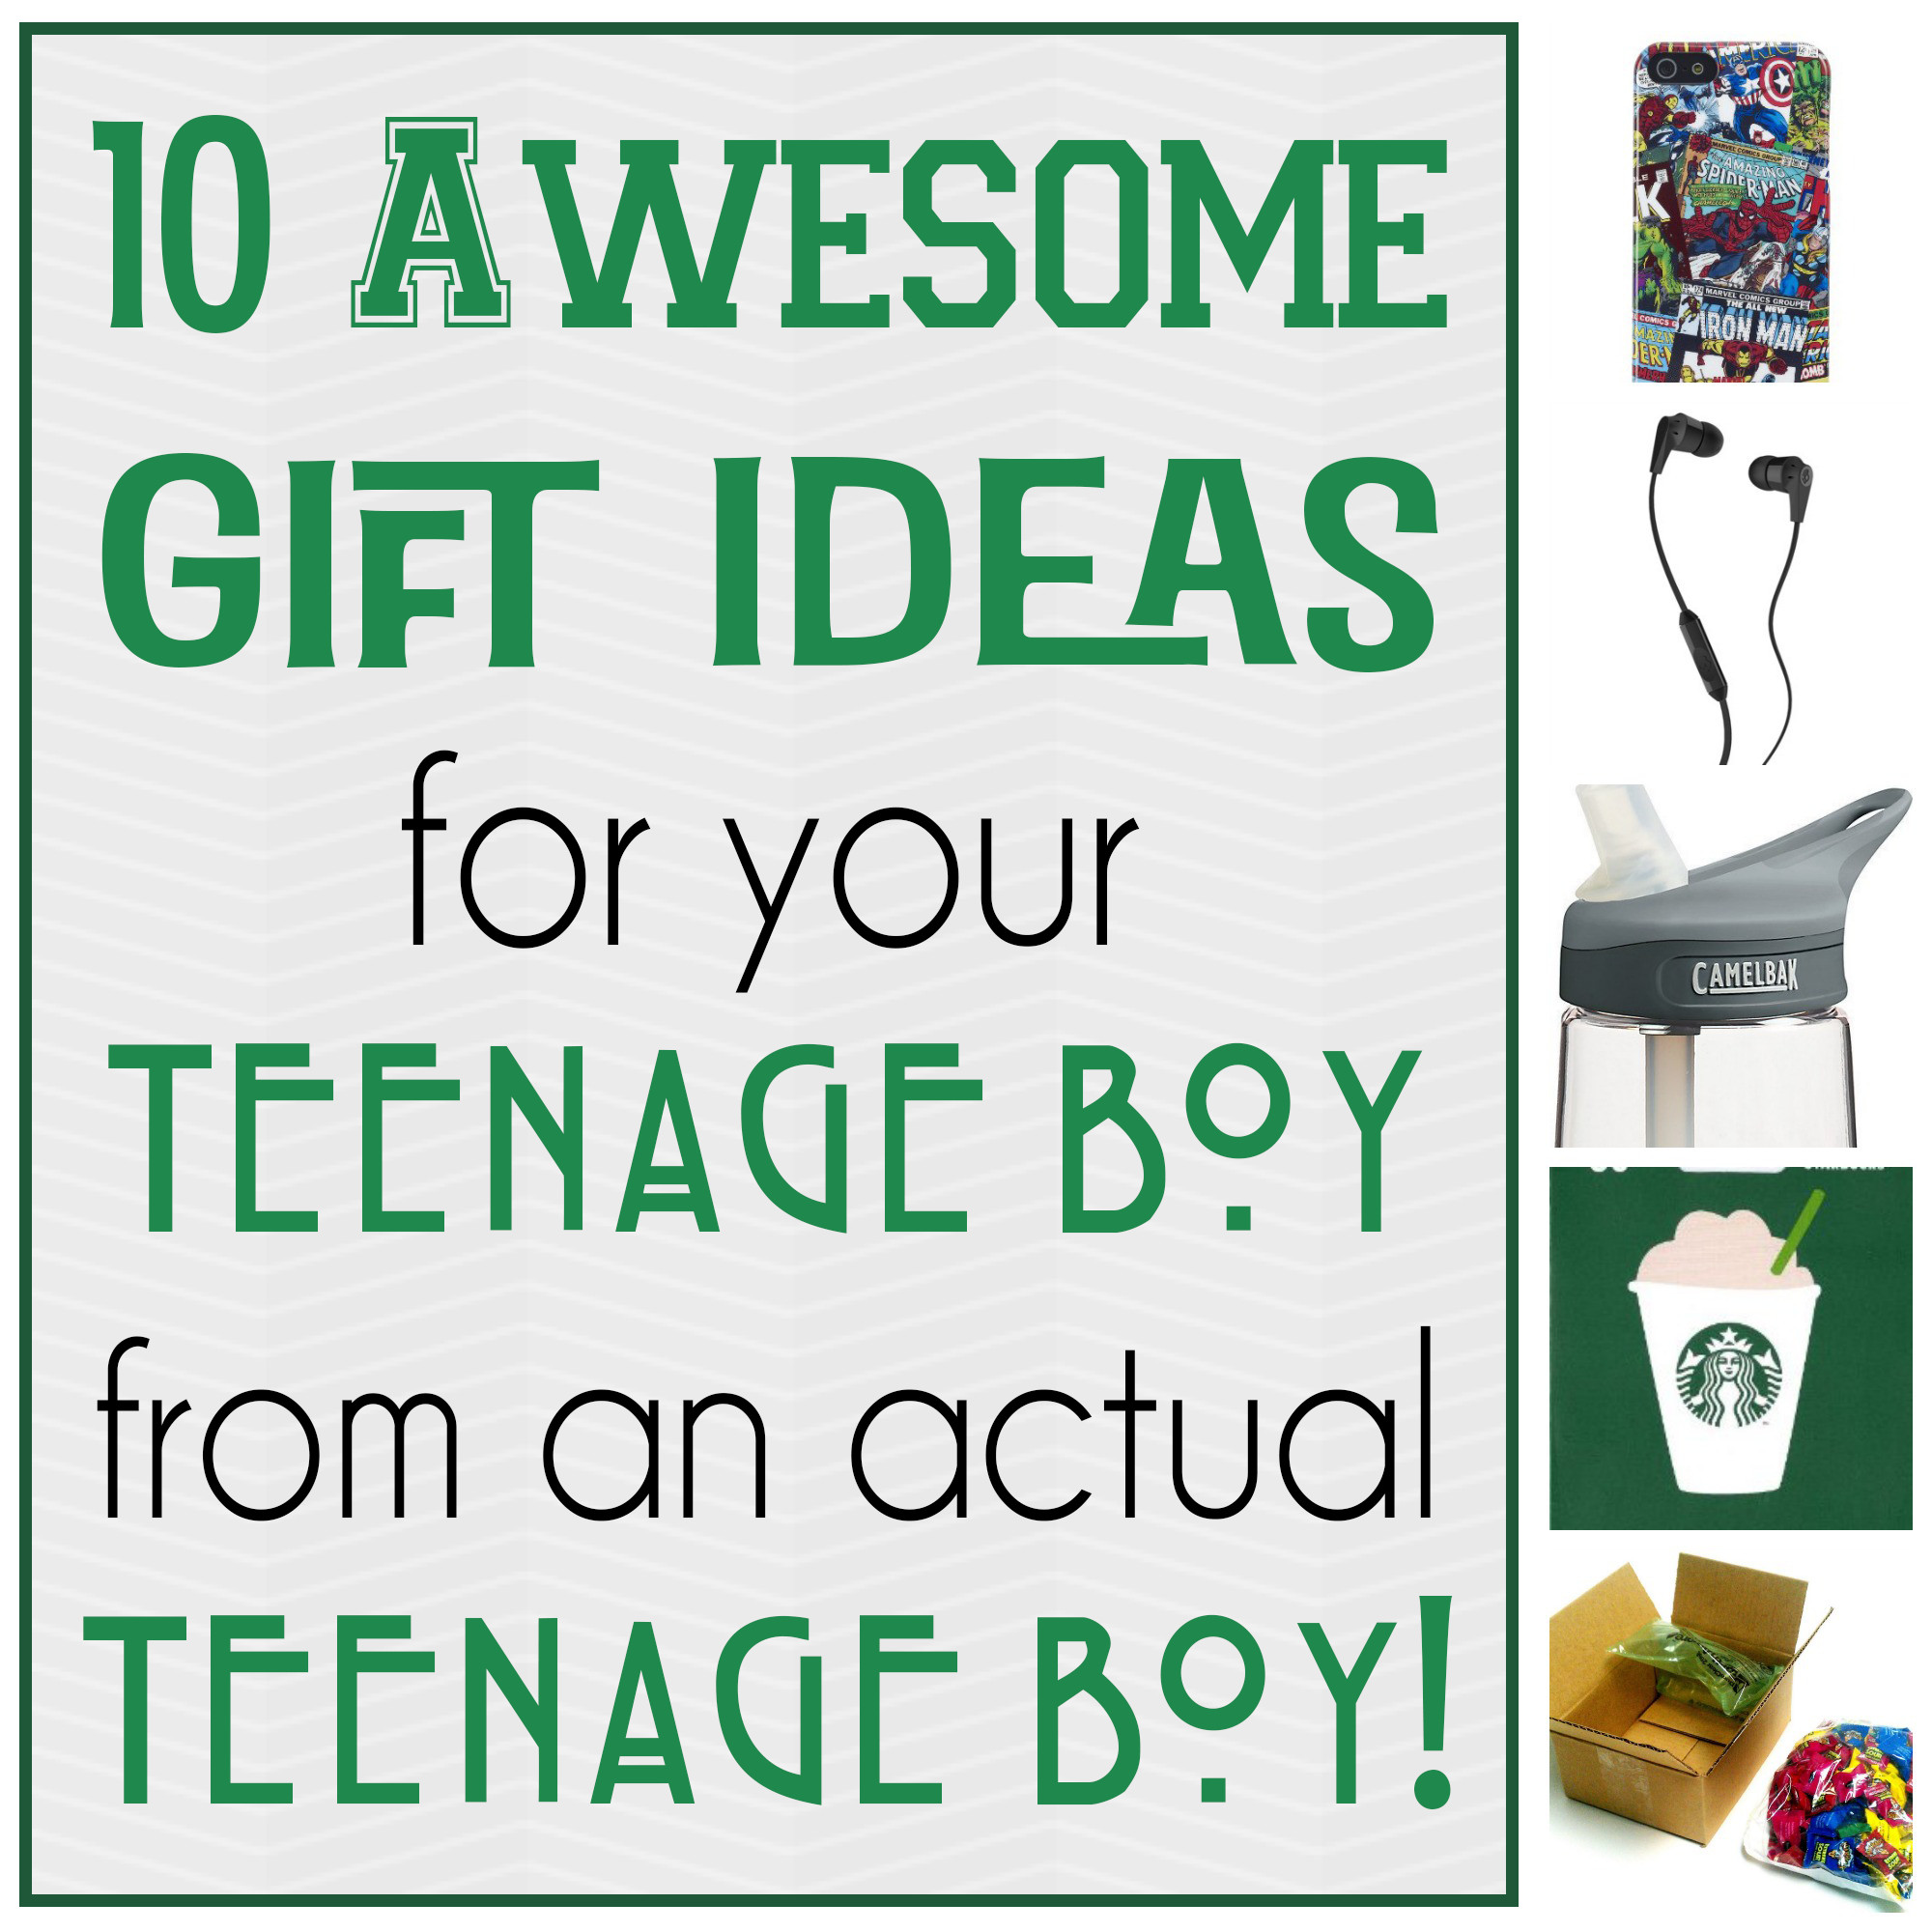 Best ideas about Christmas Gift Ideas For Tween Boys . Save or Pin 10 Awesome Gift Ideas for Teenage Boys Now.